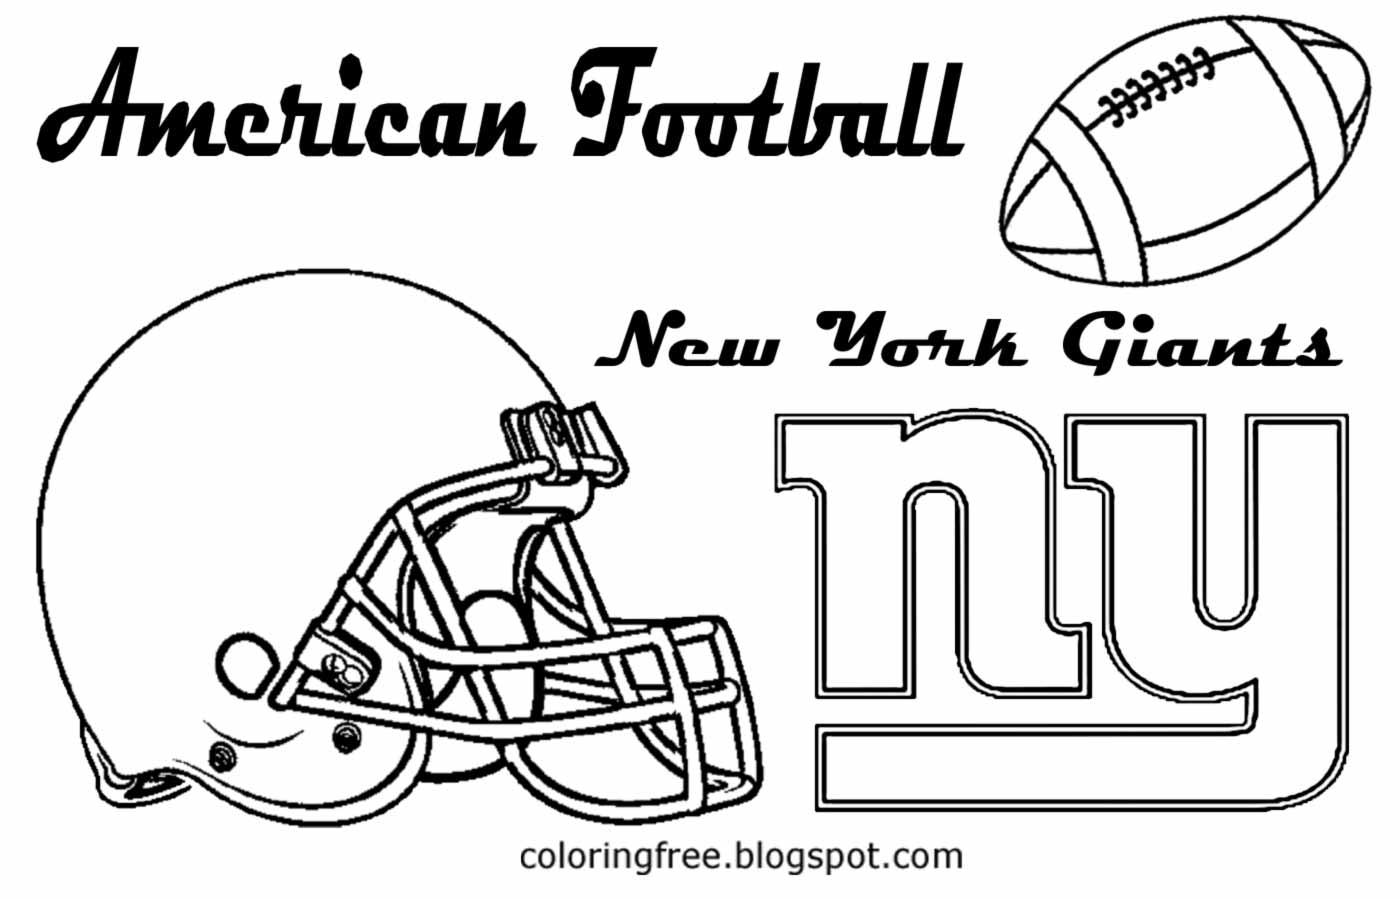 giants football coloring pages - photo#26